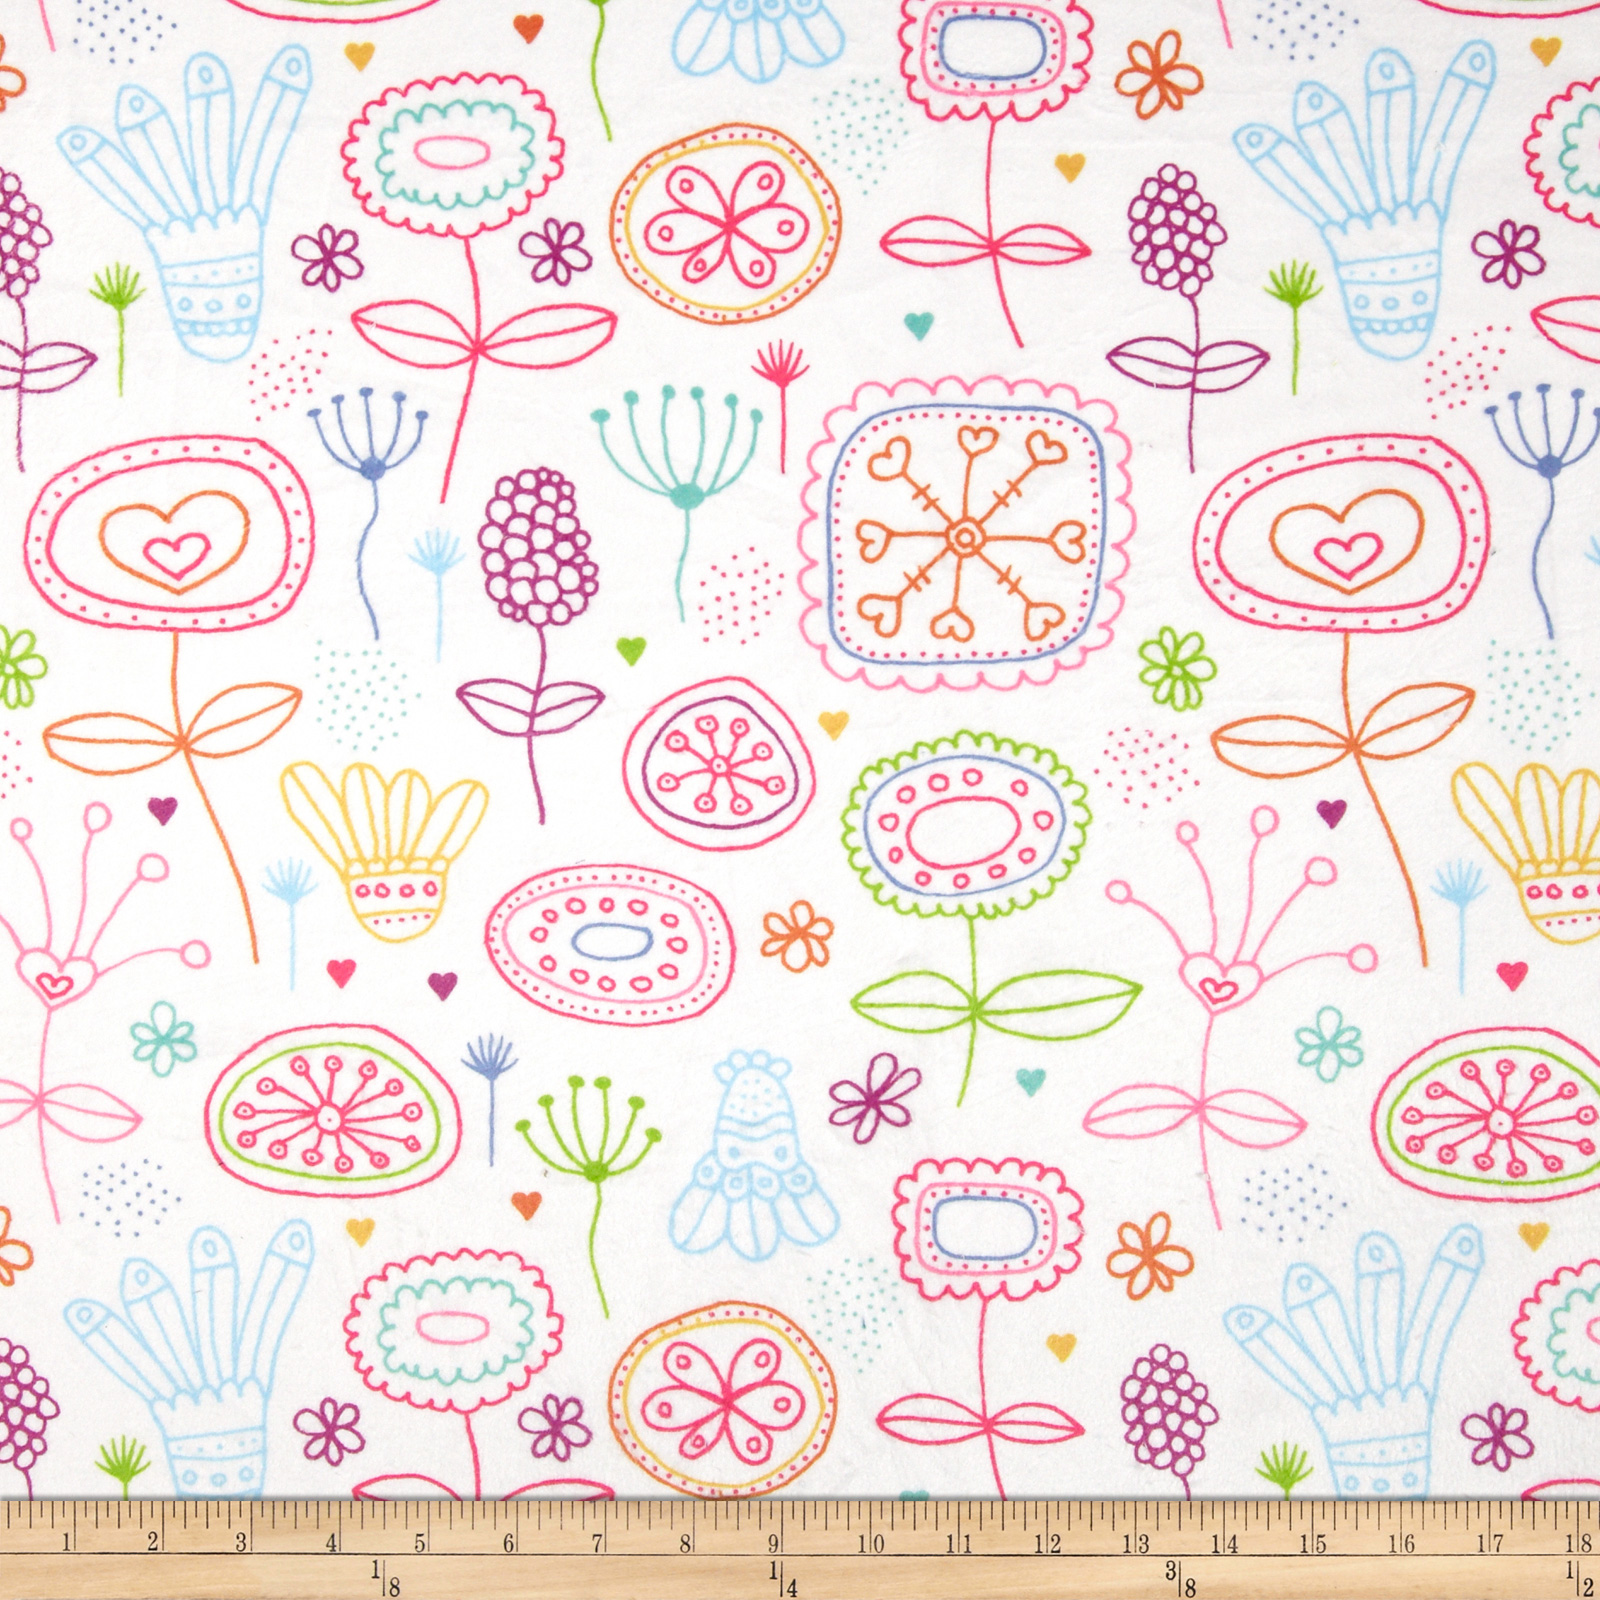 Minky Kinder Pink Fabric